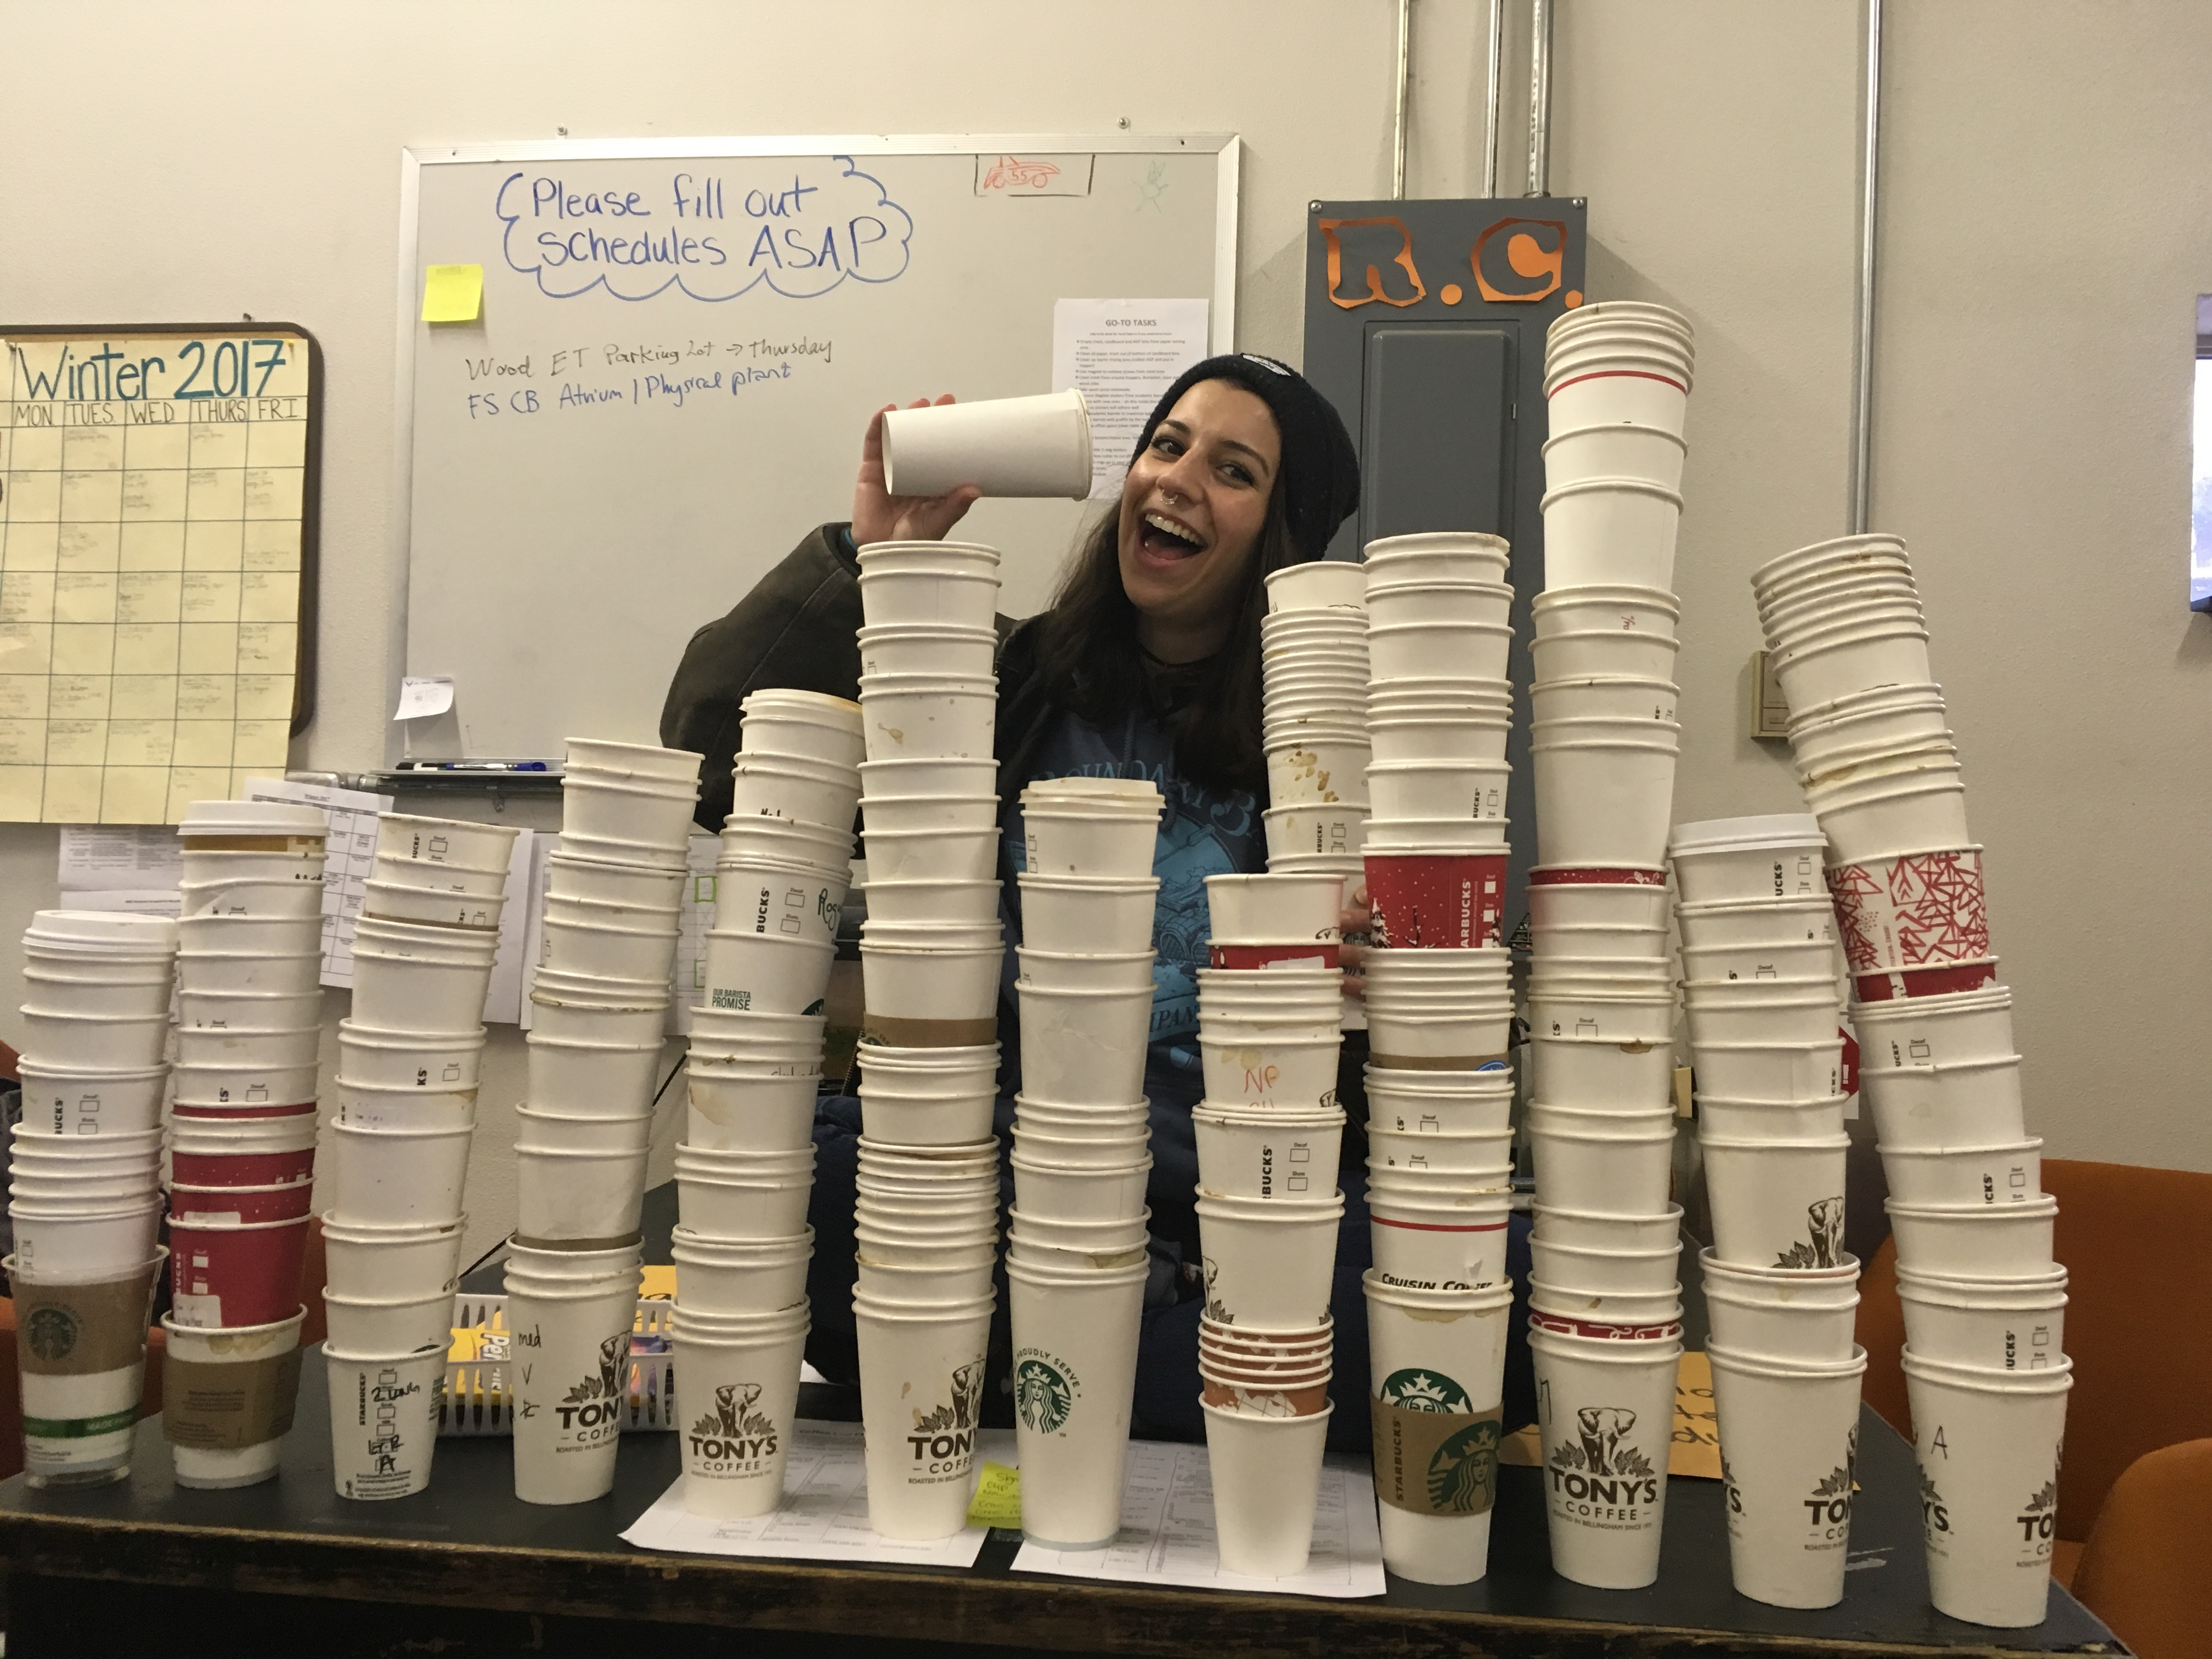 Stacks and stacks of coffee cups that were collected from the recycling! They are compostable though.... :(